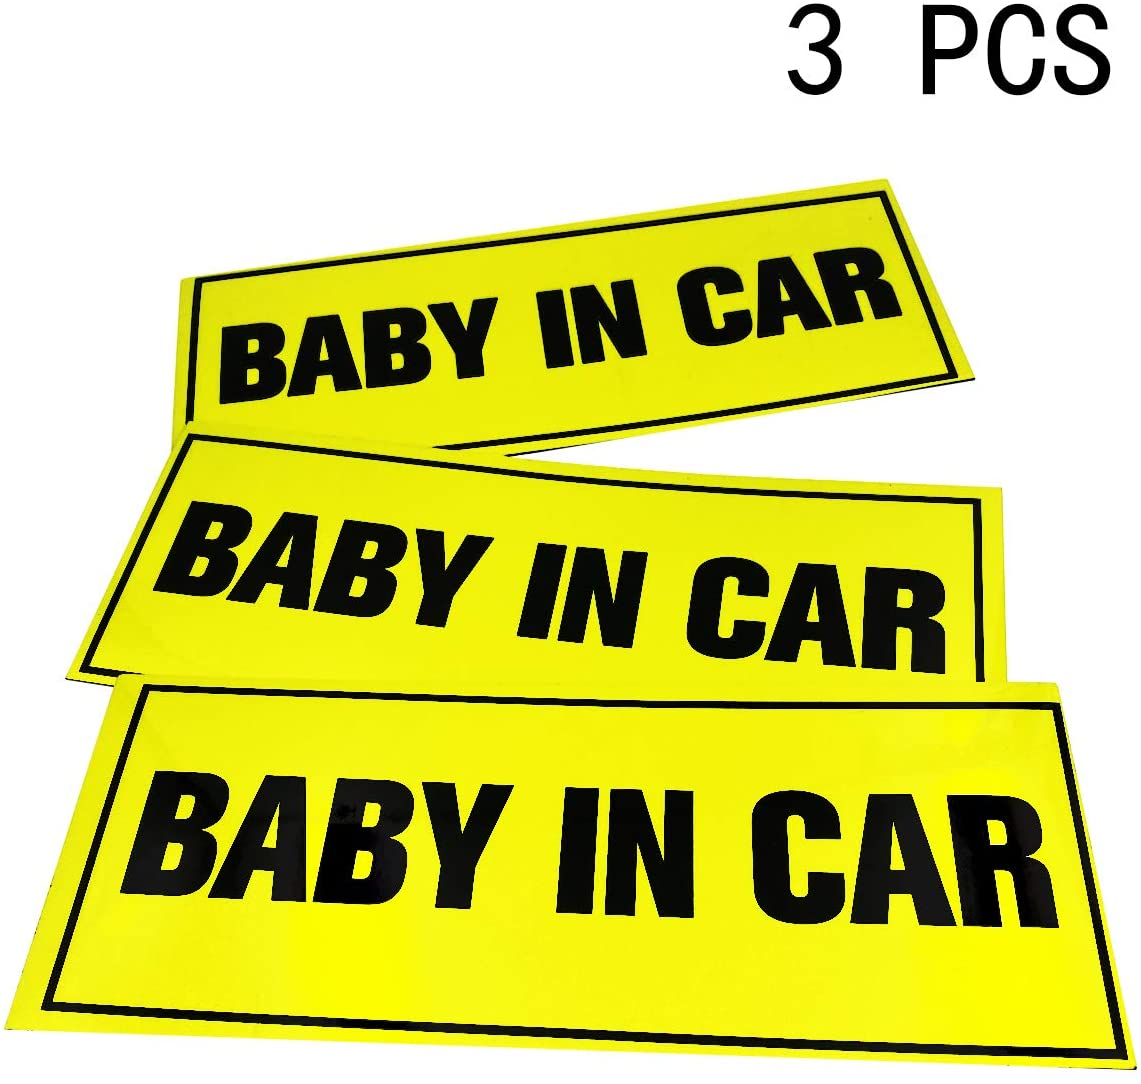 SHENGAYWAUTO Car&Vehicle Reflective Sticker for Beginner or Novice Student Driver Sign,Safety Sign Vehicle Bumper Magnet, Kids Safety Warning Sucker Sticker(3 Packs - Baby in car,8.5 x 3.34 inch)